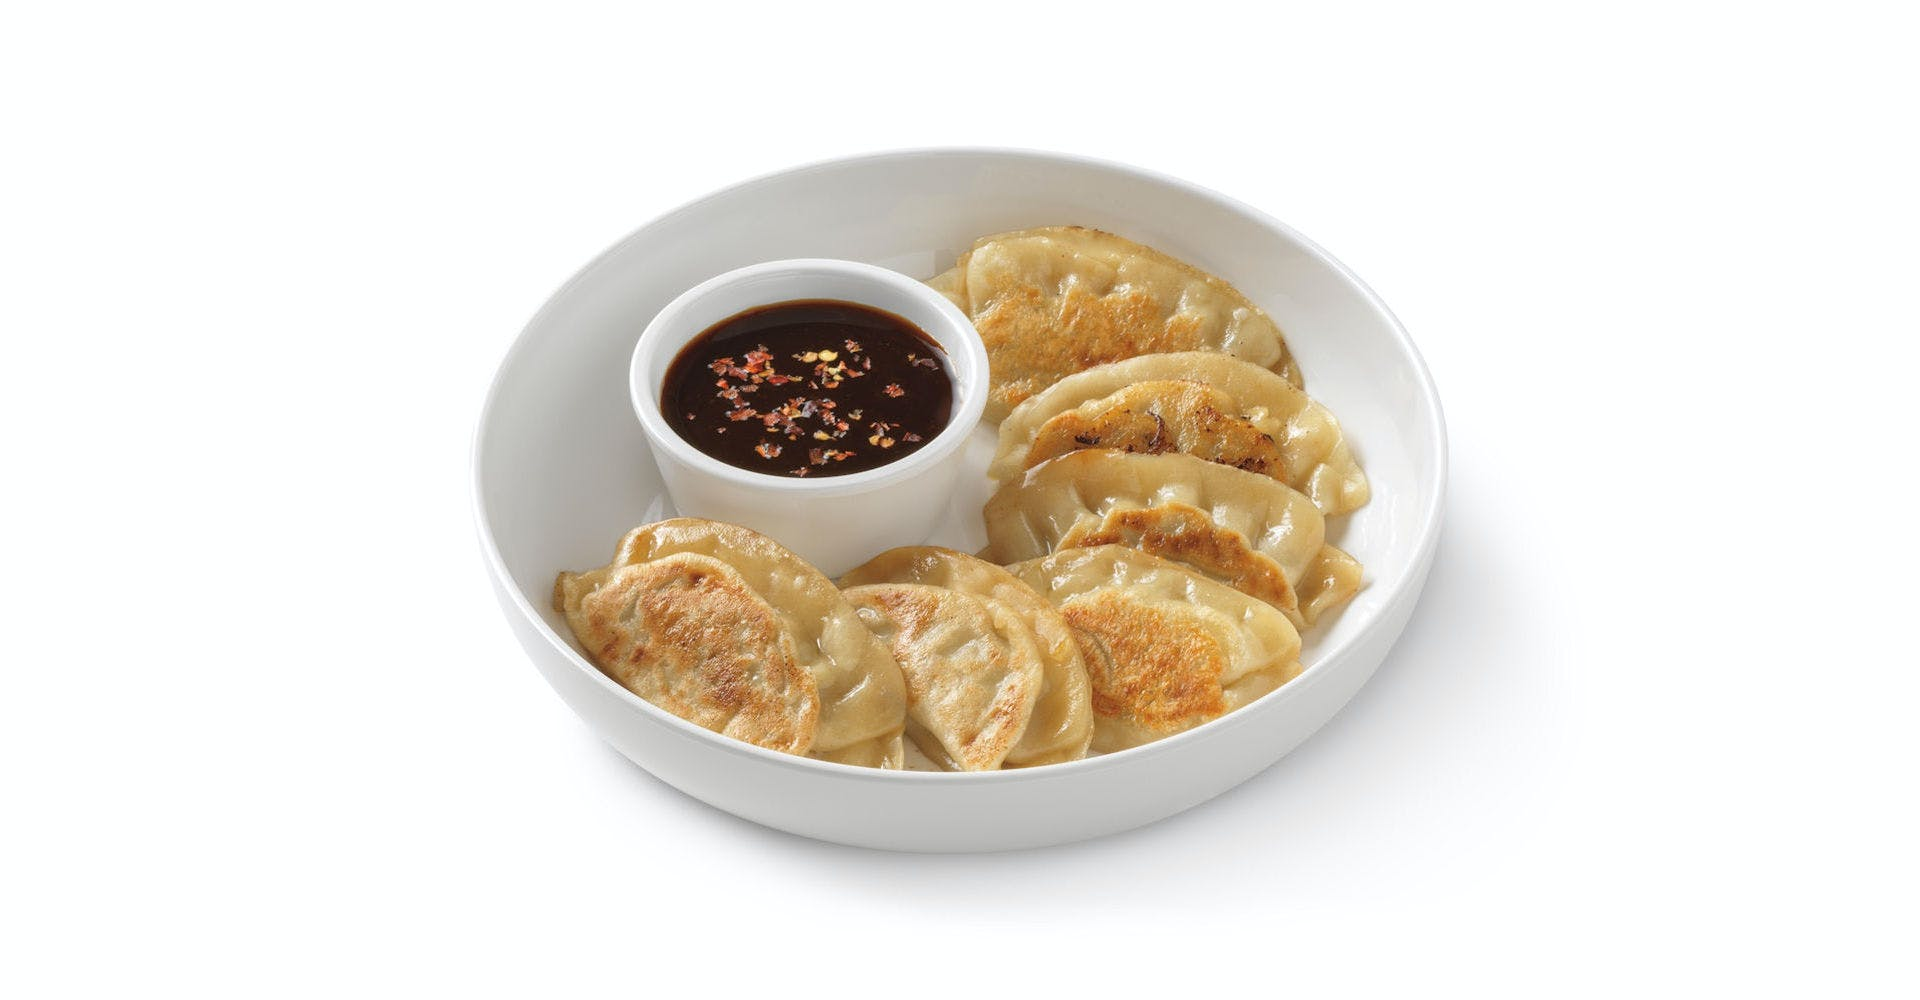 Potstickers from Noodles & Company - Wausau Town Center in Wausau, WI